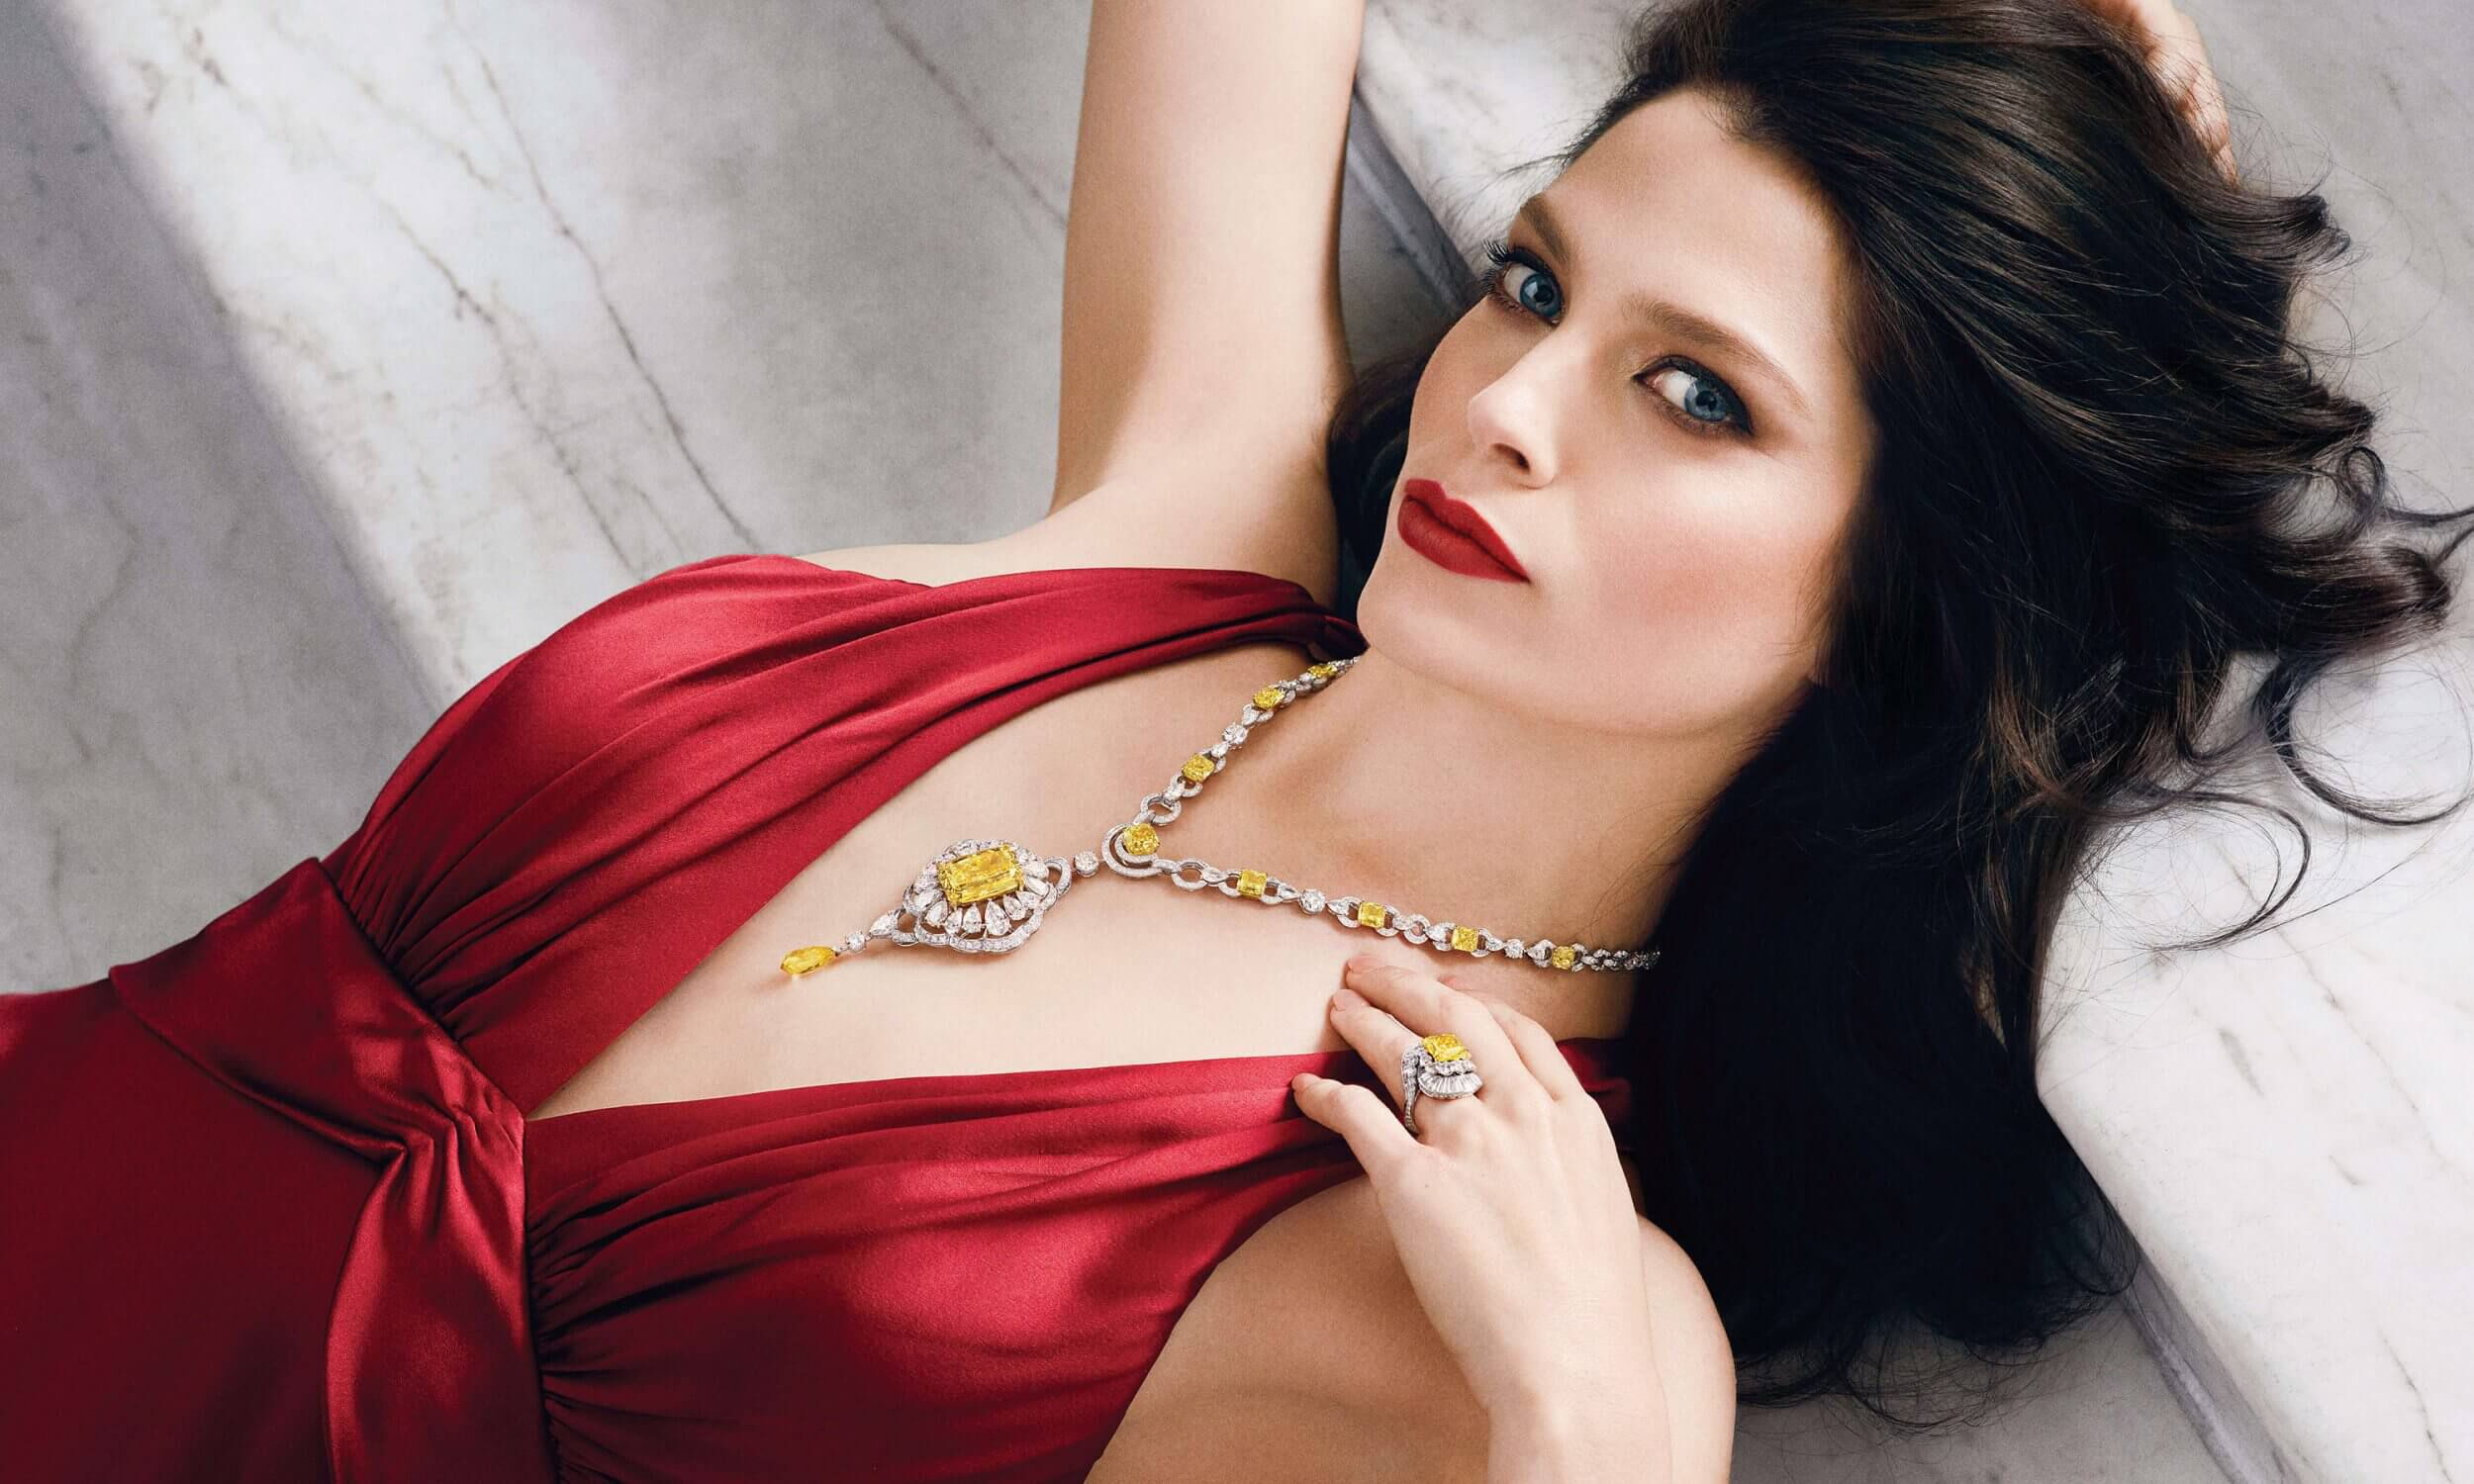 A lady in a red dress reclining wearing a Graff Diamonds Yellow and white diamond necklace featuring a 32 carat Fancy Yellow radiant cut diamond